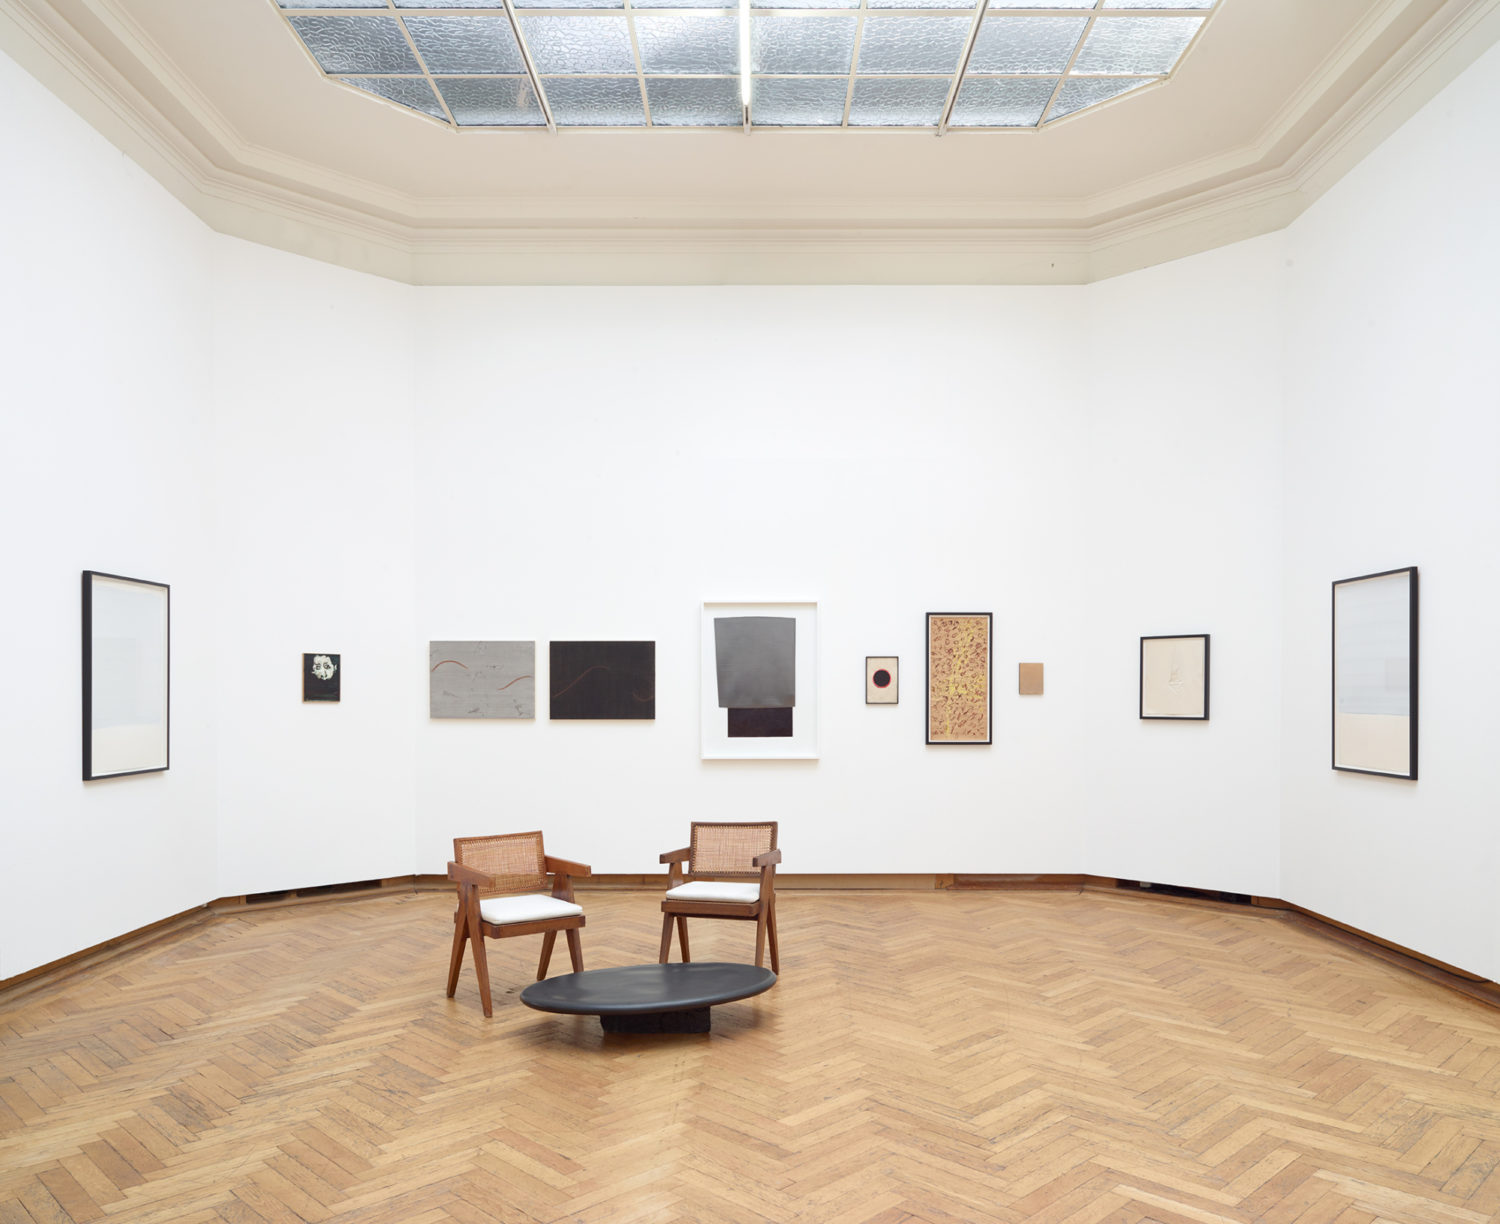 Installation view of Axel Vervoordt Gallery at Art on Paper 2021